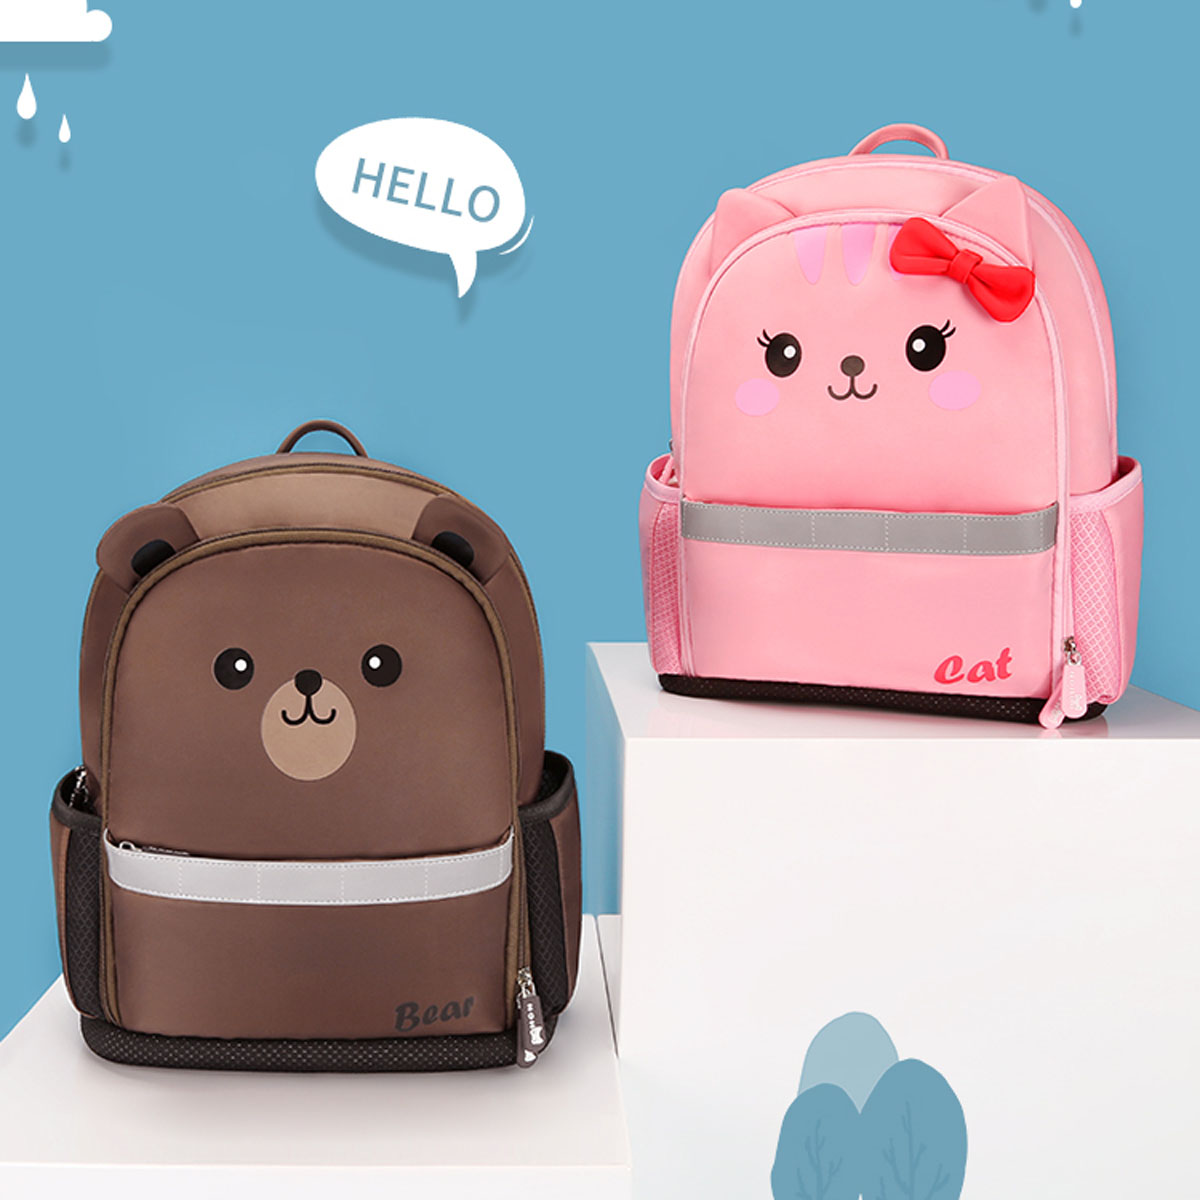 Nohoo Children Products-Kids Backpack Supplier Manufacture | 3D polyester bag-3